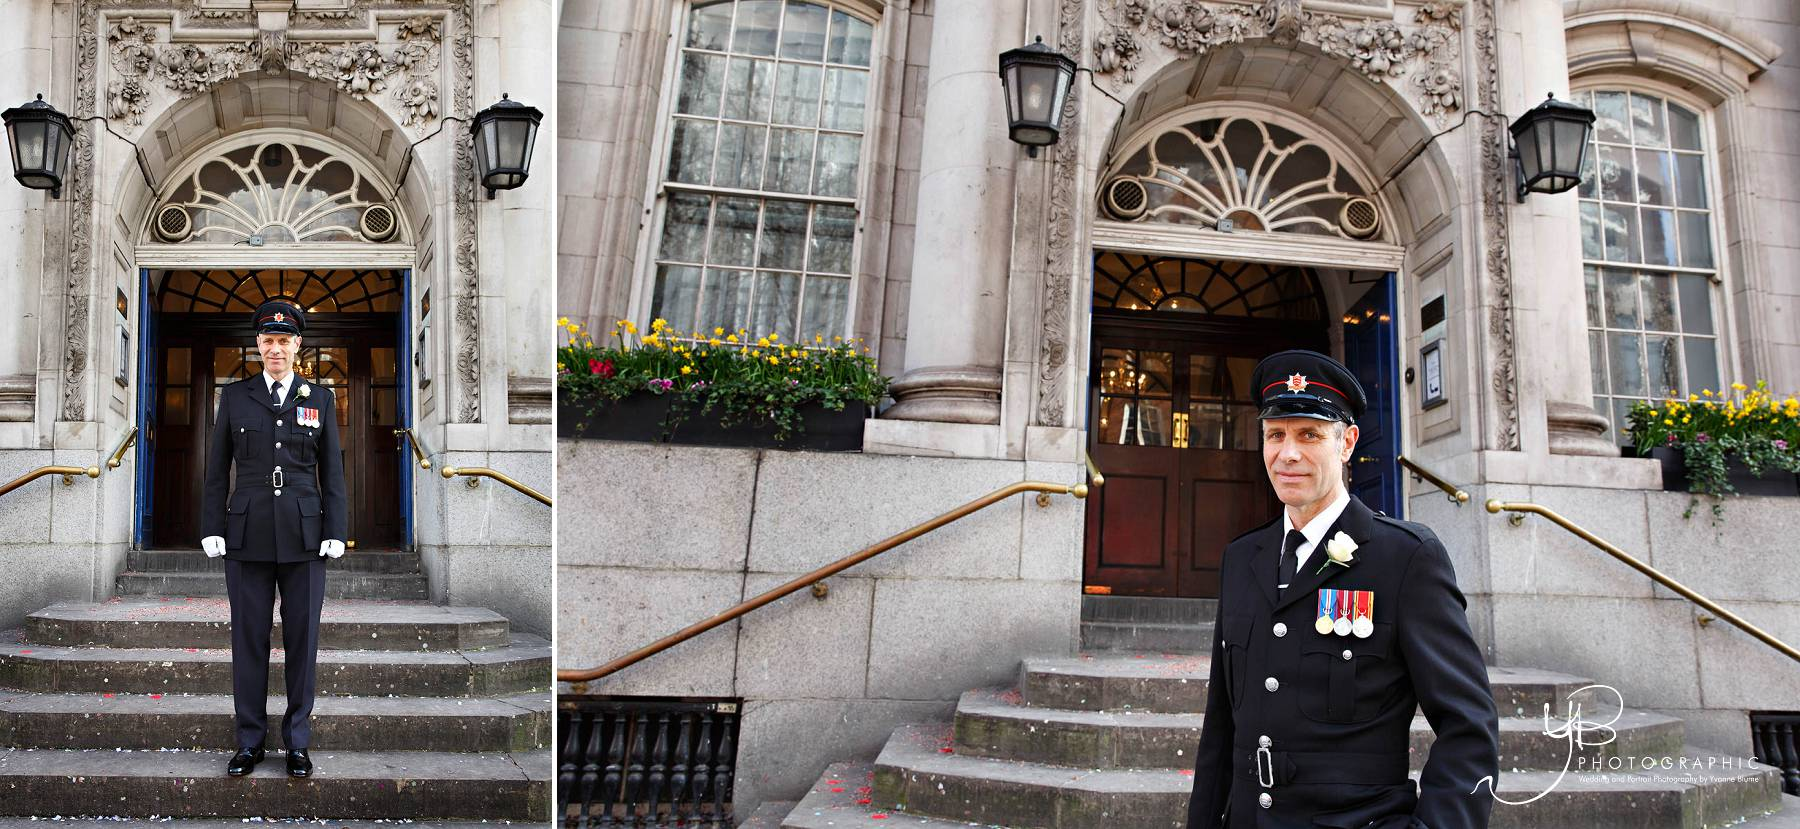 Firefighter Groom at Chelsea Register Office